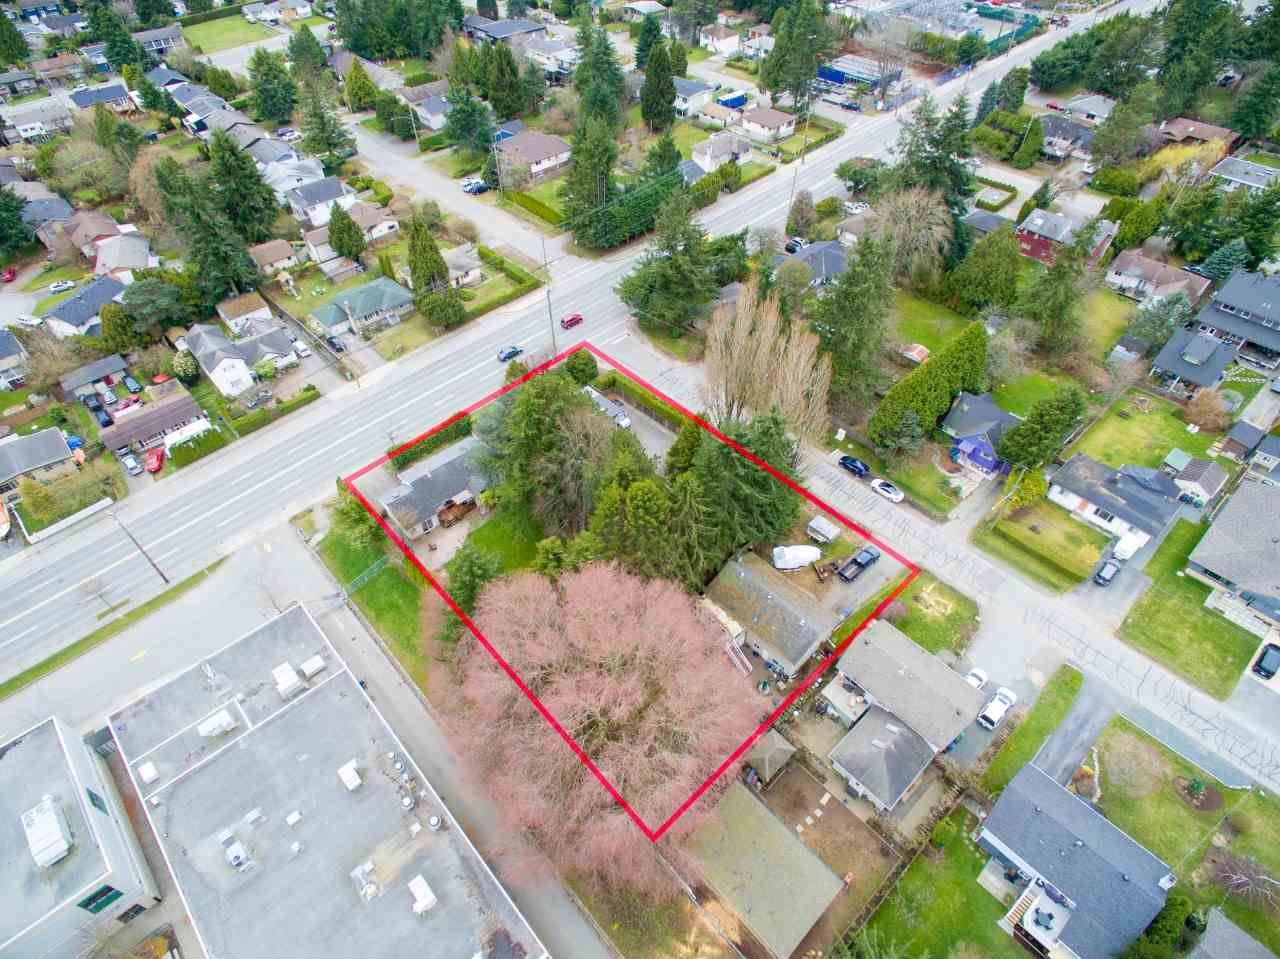 Main Photo: 15719 16 Avenue in Surrey: Sunnyside Park Surrey House for sale (South Surrey White Rock)  : MLS®# R2249136